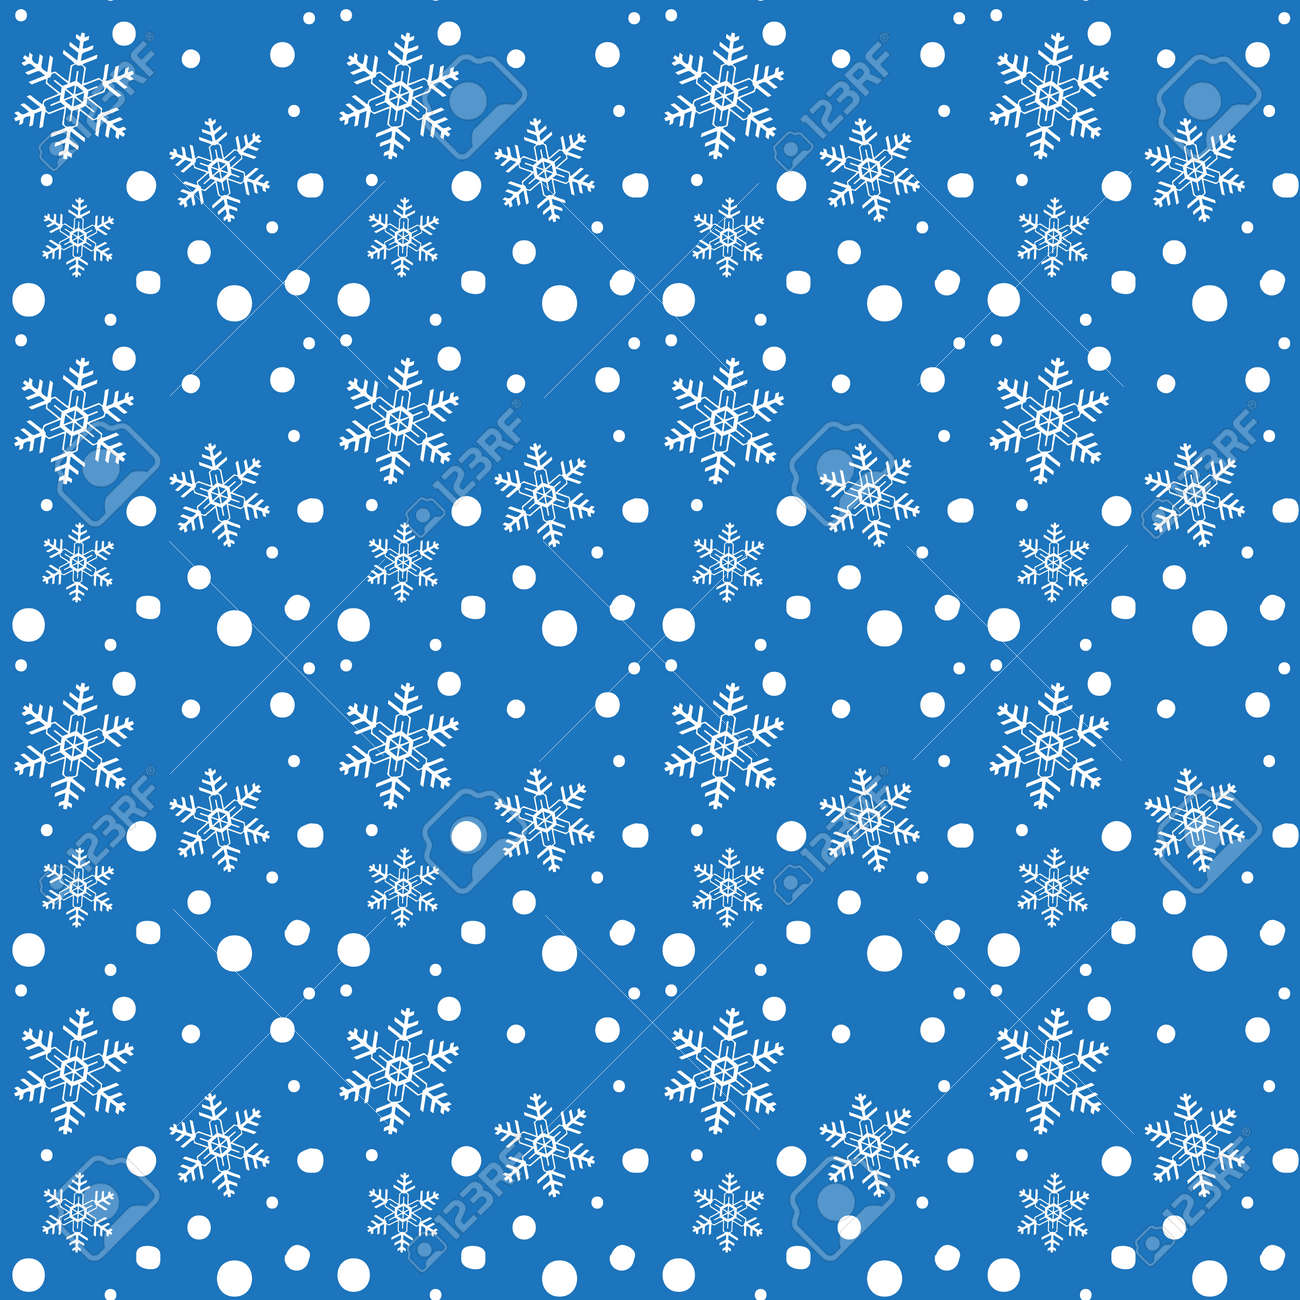 Christmas White Snowflakes Falling Seamless Blue Background Cartoon Royalty Free Cliparts Vectors And Stock Illustration Image 89492173